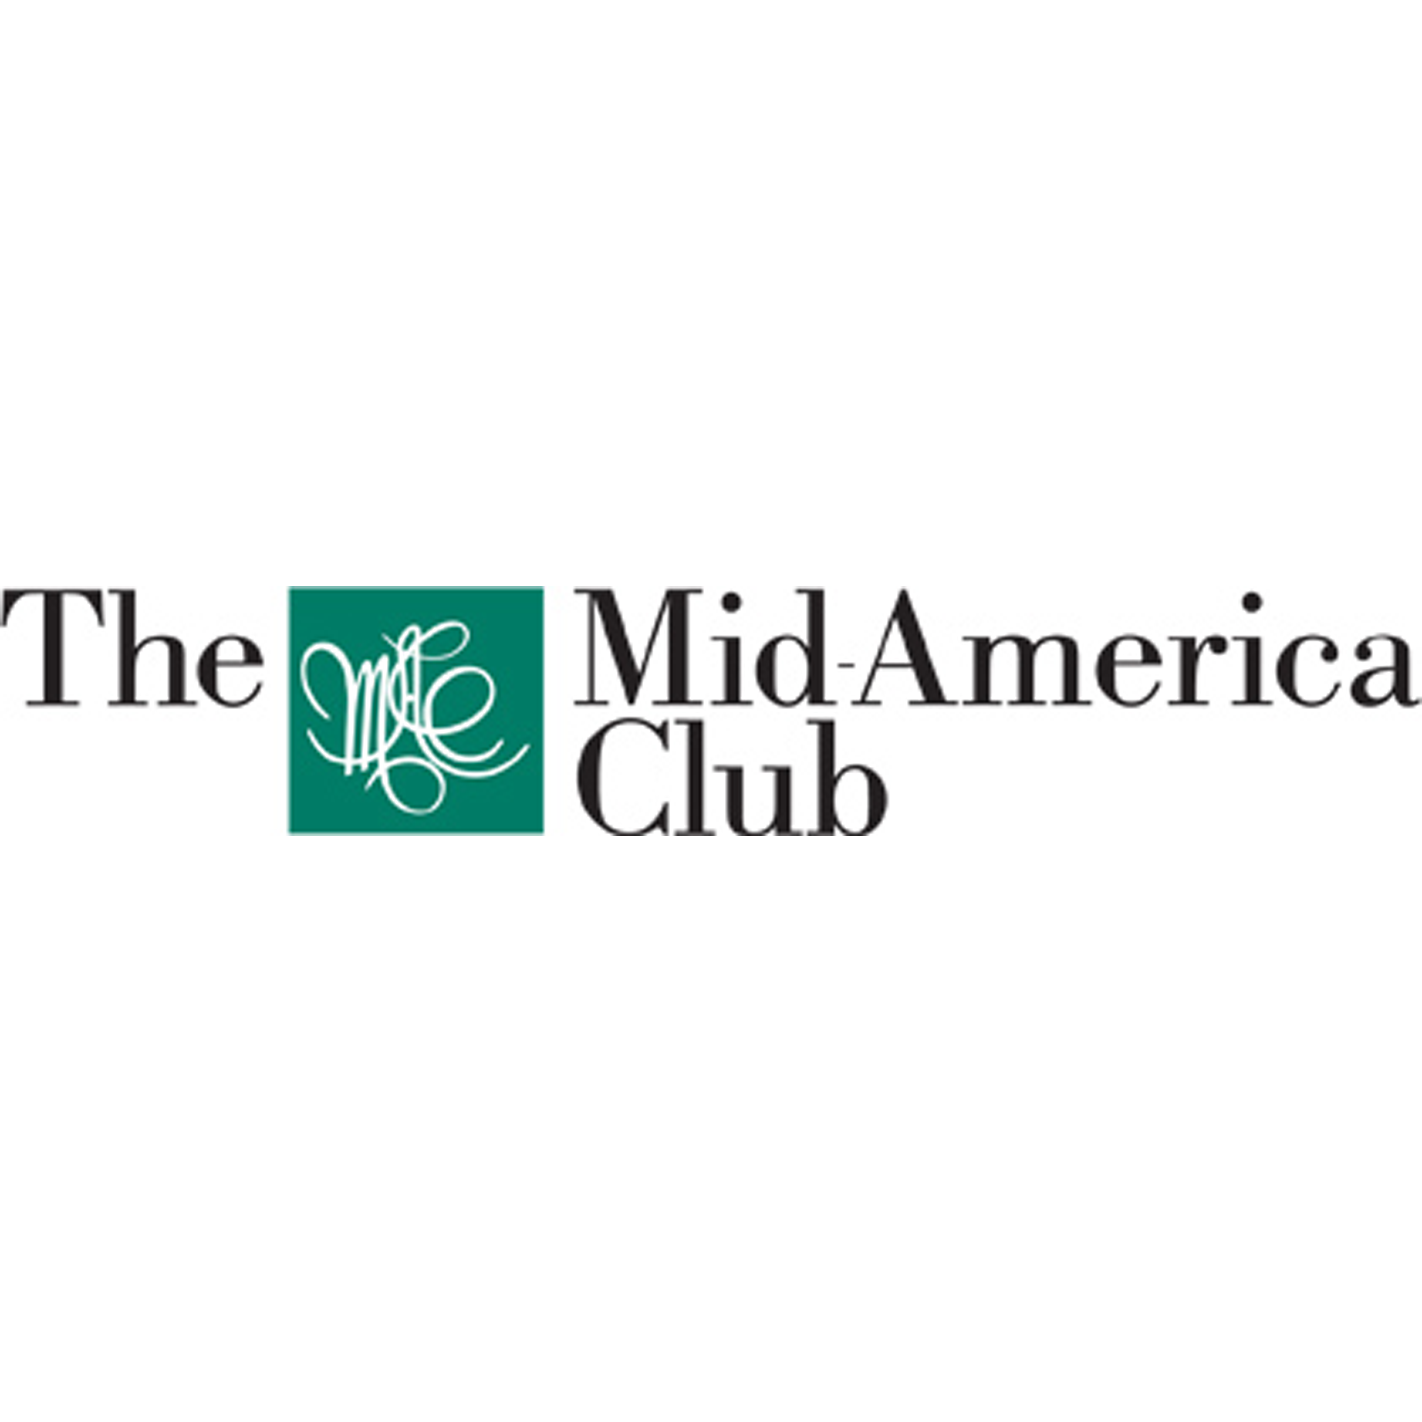 The Mid-America Club